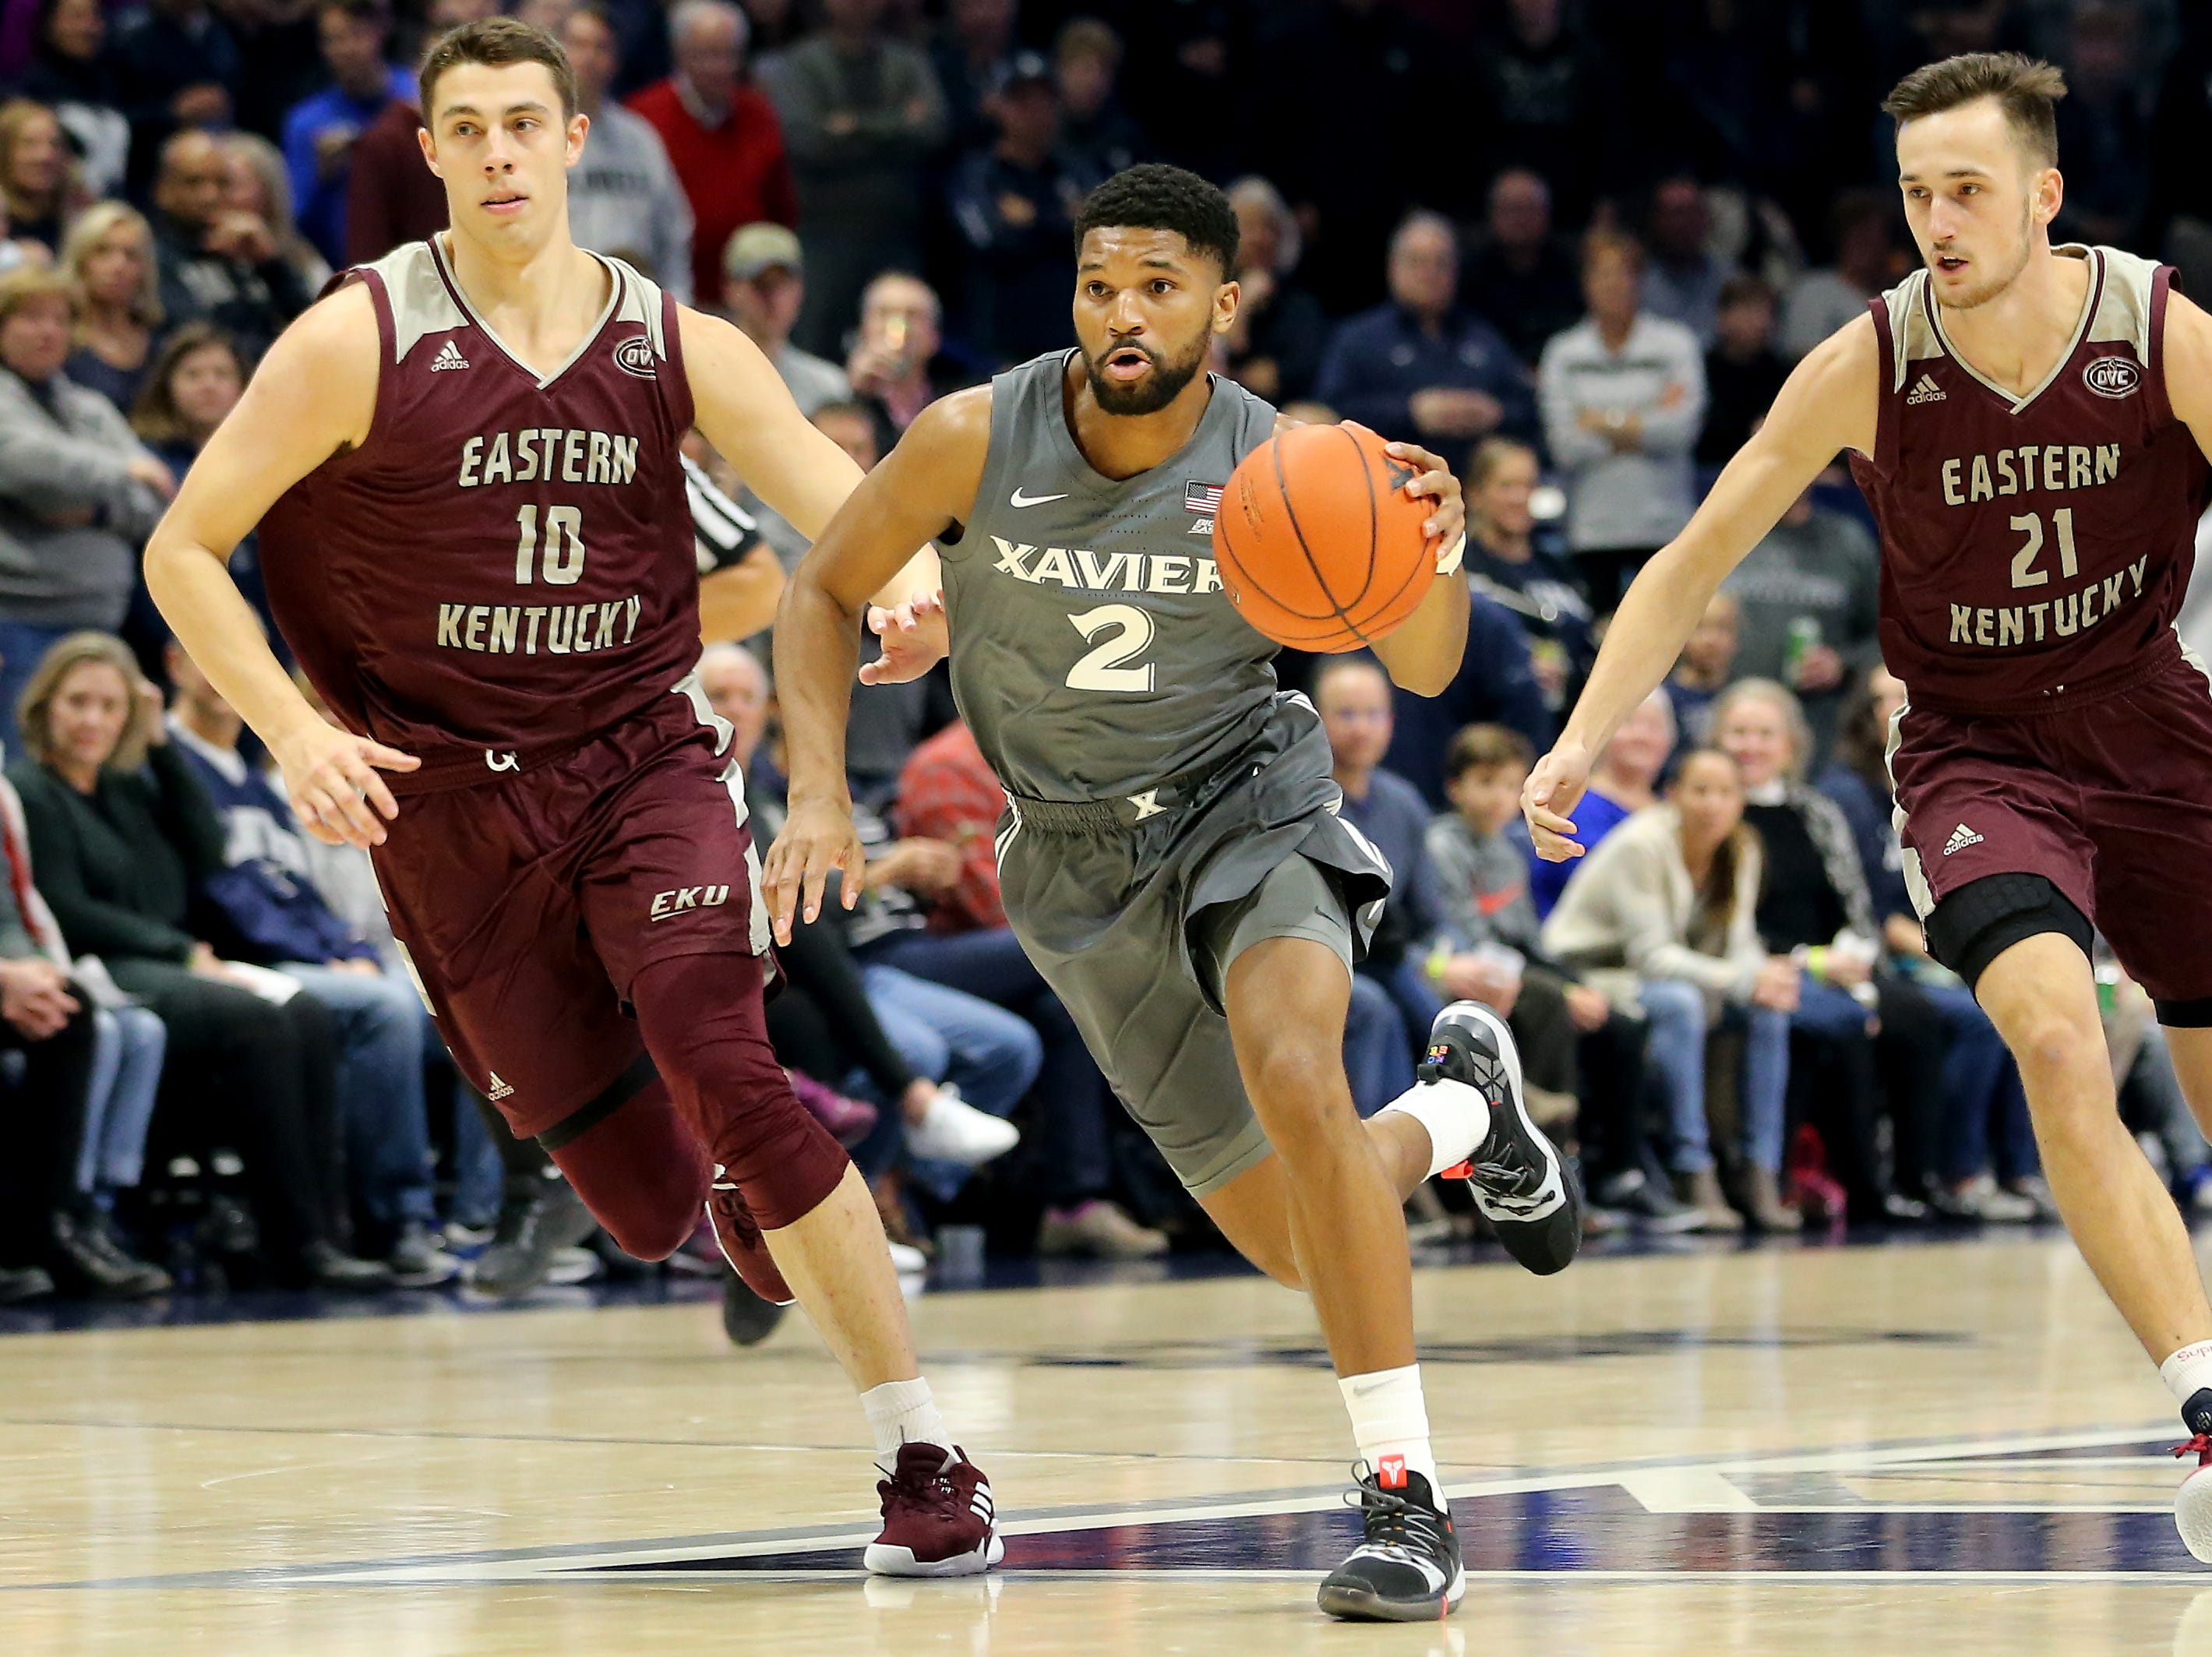 Xavier Musketeers guard Kyle Castlin (2), center, pushes the ball up court as Eastern Kentucky Colonels forward Nick Mayo (10), left, and Eastern Kentucky Colonels forward Lachlan Anderson (21), right, give chase in the first half of an NCAA college basketball game, Saturday, Dec. 15, 2018, at Cintas Center in Cincinnati, Ohio